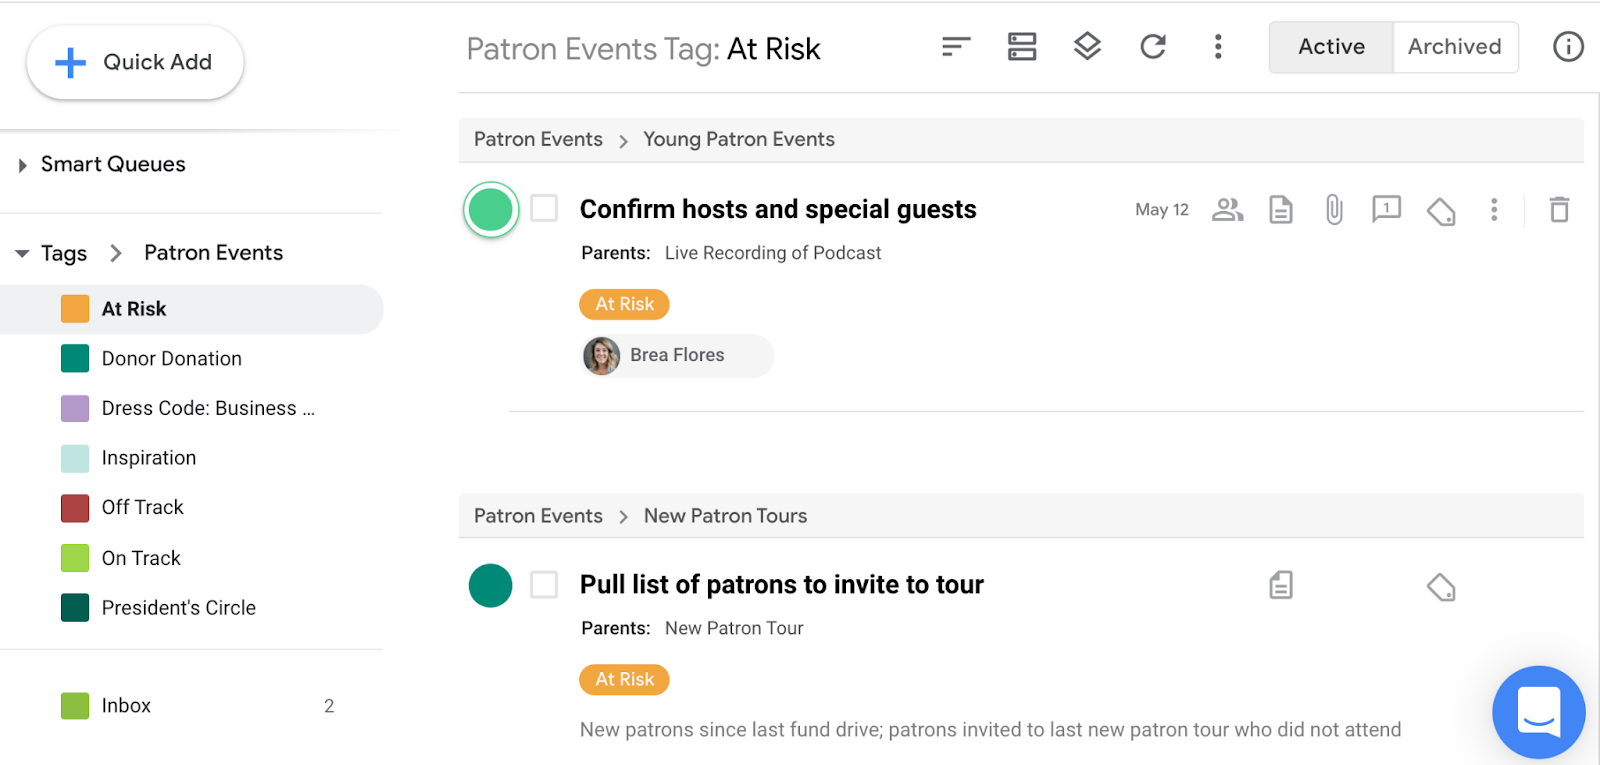 View team tasks with a tag by clicking that tag from the lefthand panel